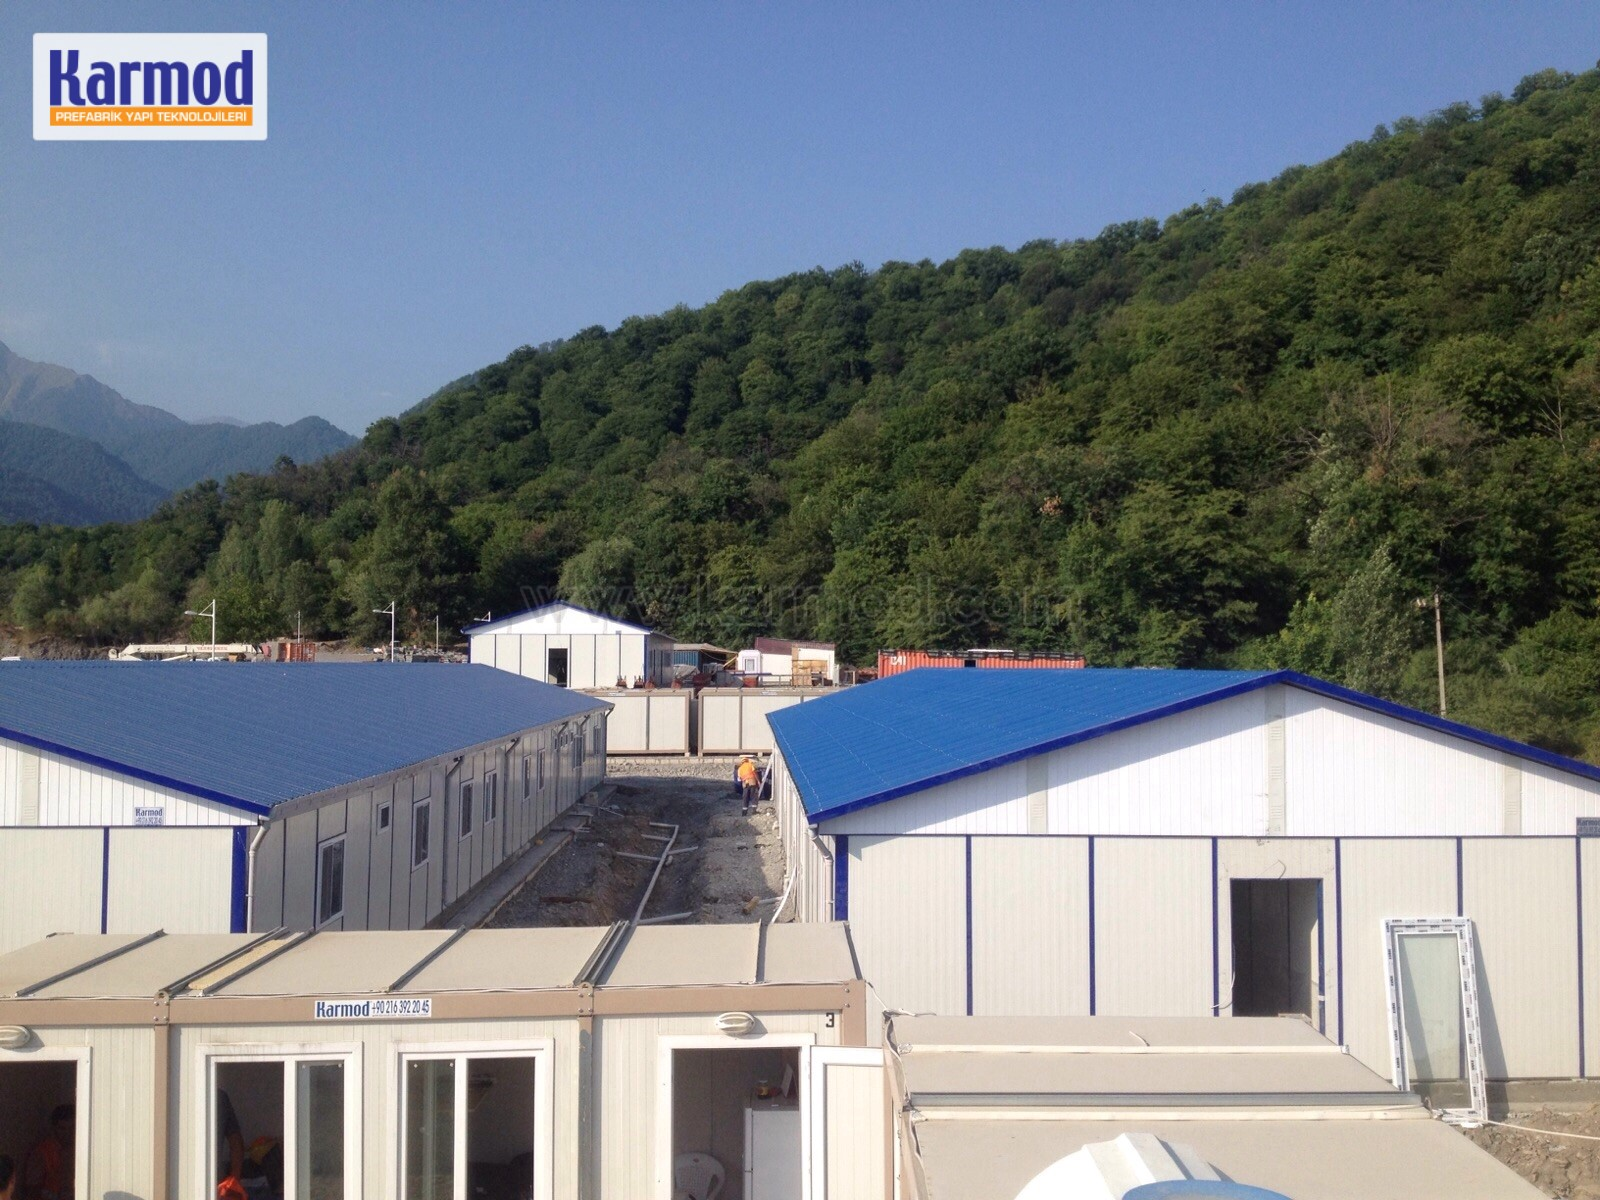 Workforce Housing for Gold Mine Camp